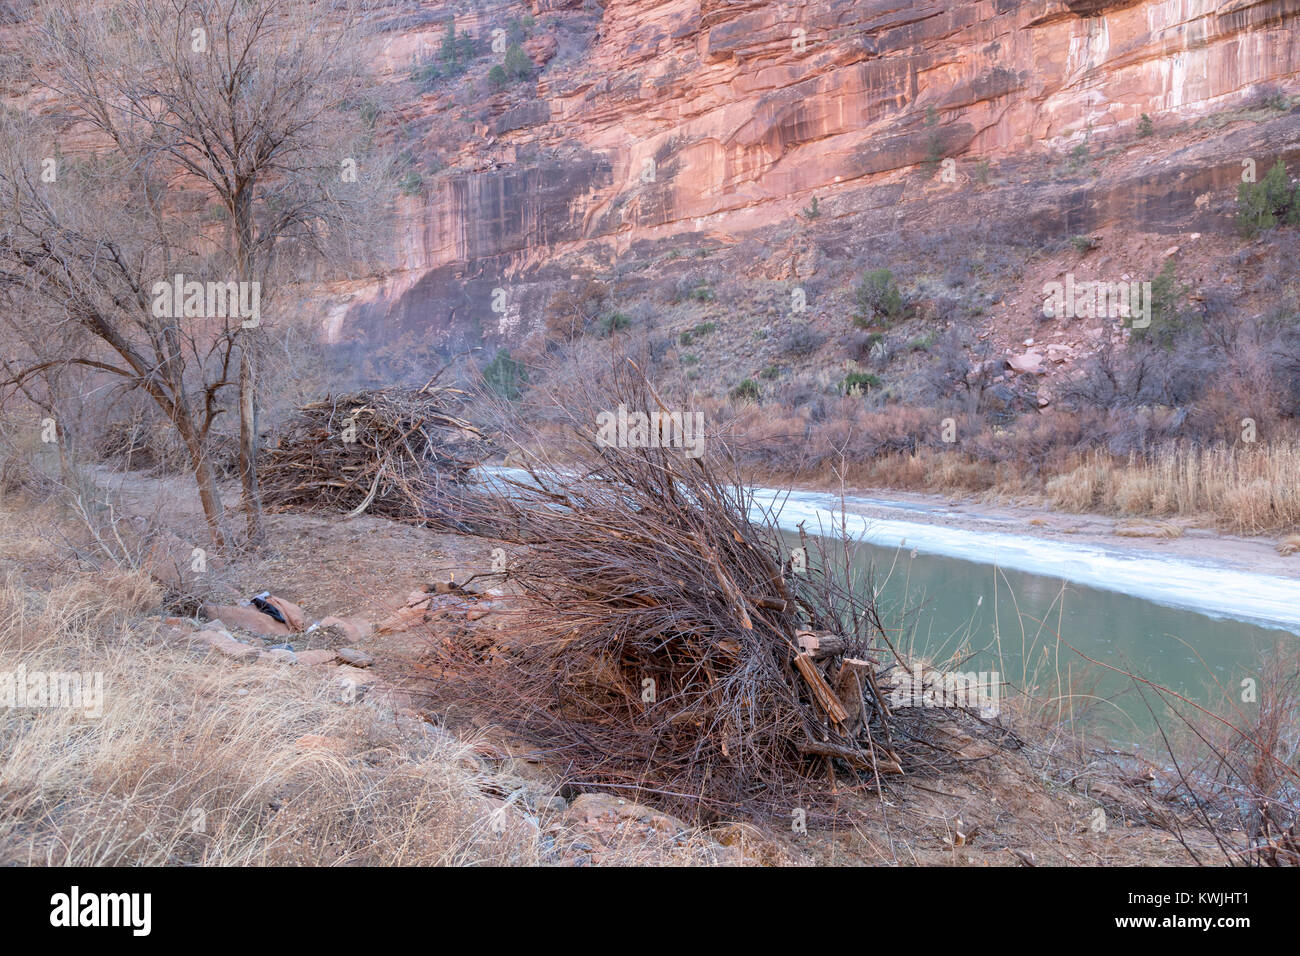 Gateway, Colorado - Piles of invasive tamarisks that have been cut by workers from the Bureau of Land Management - Stock Image